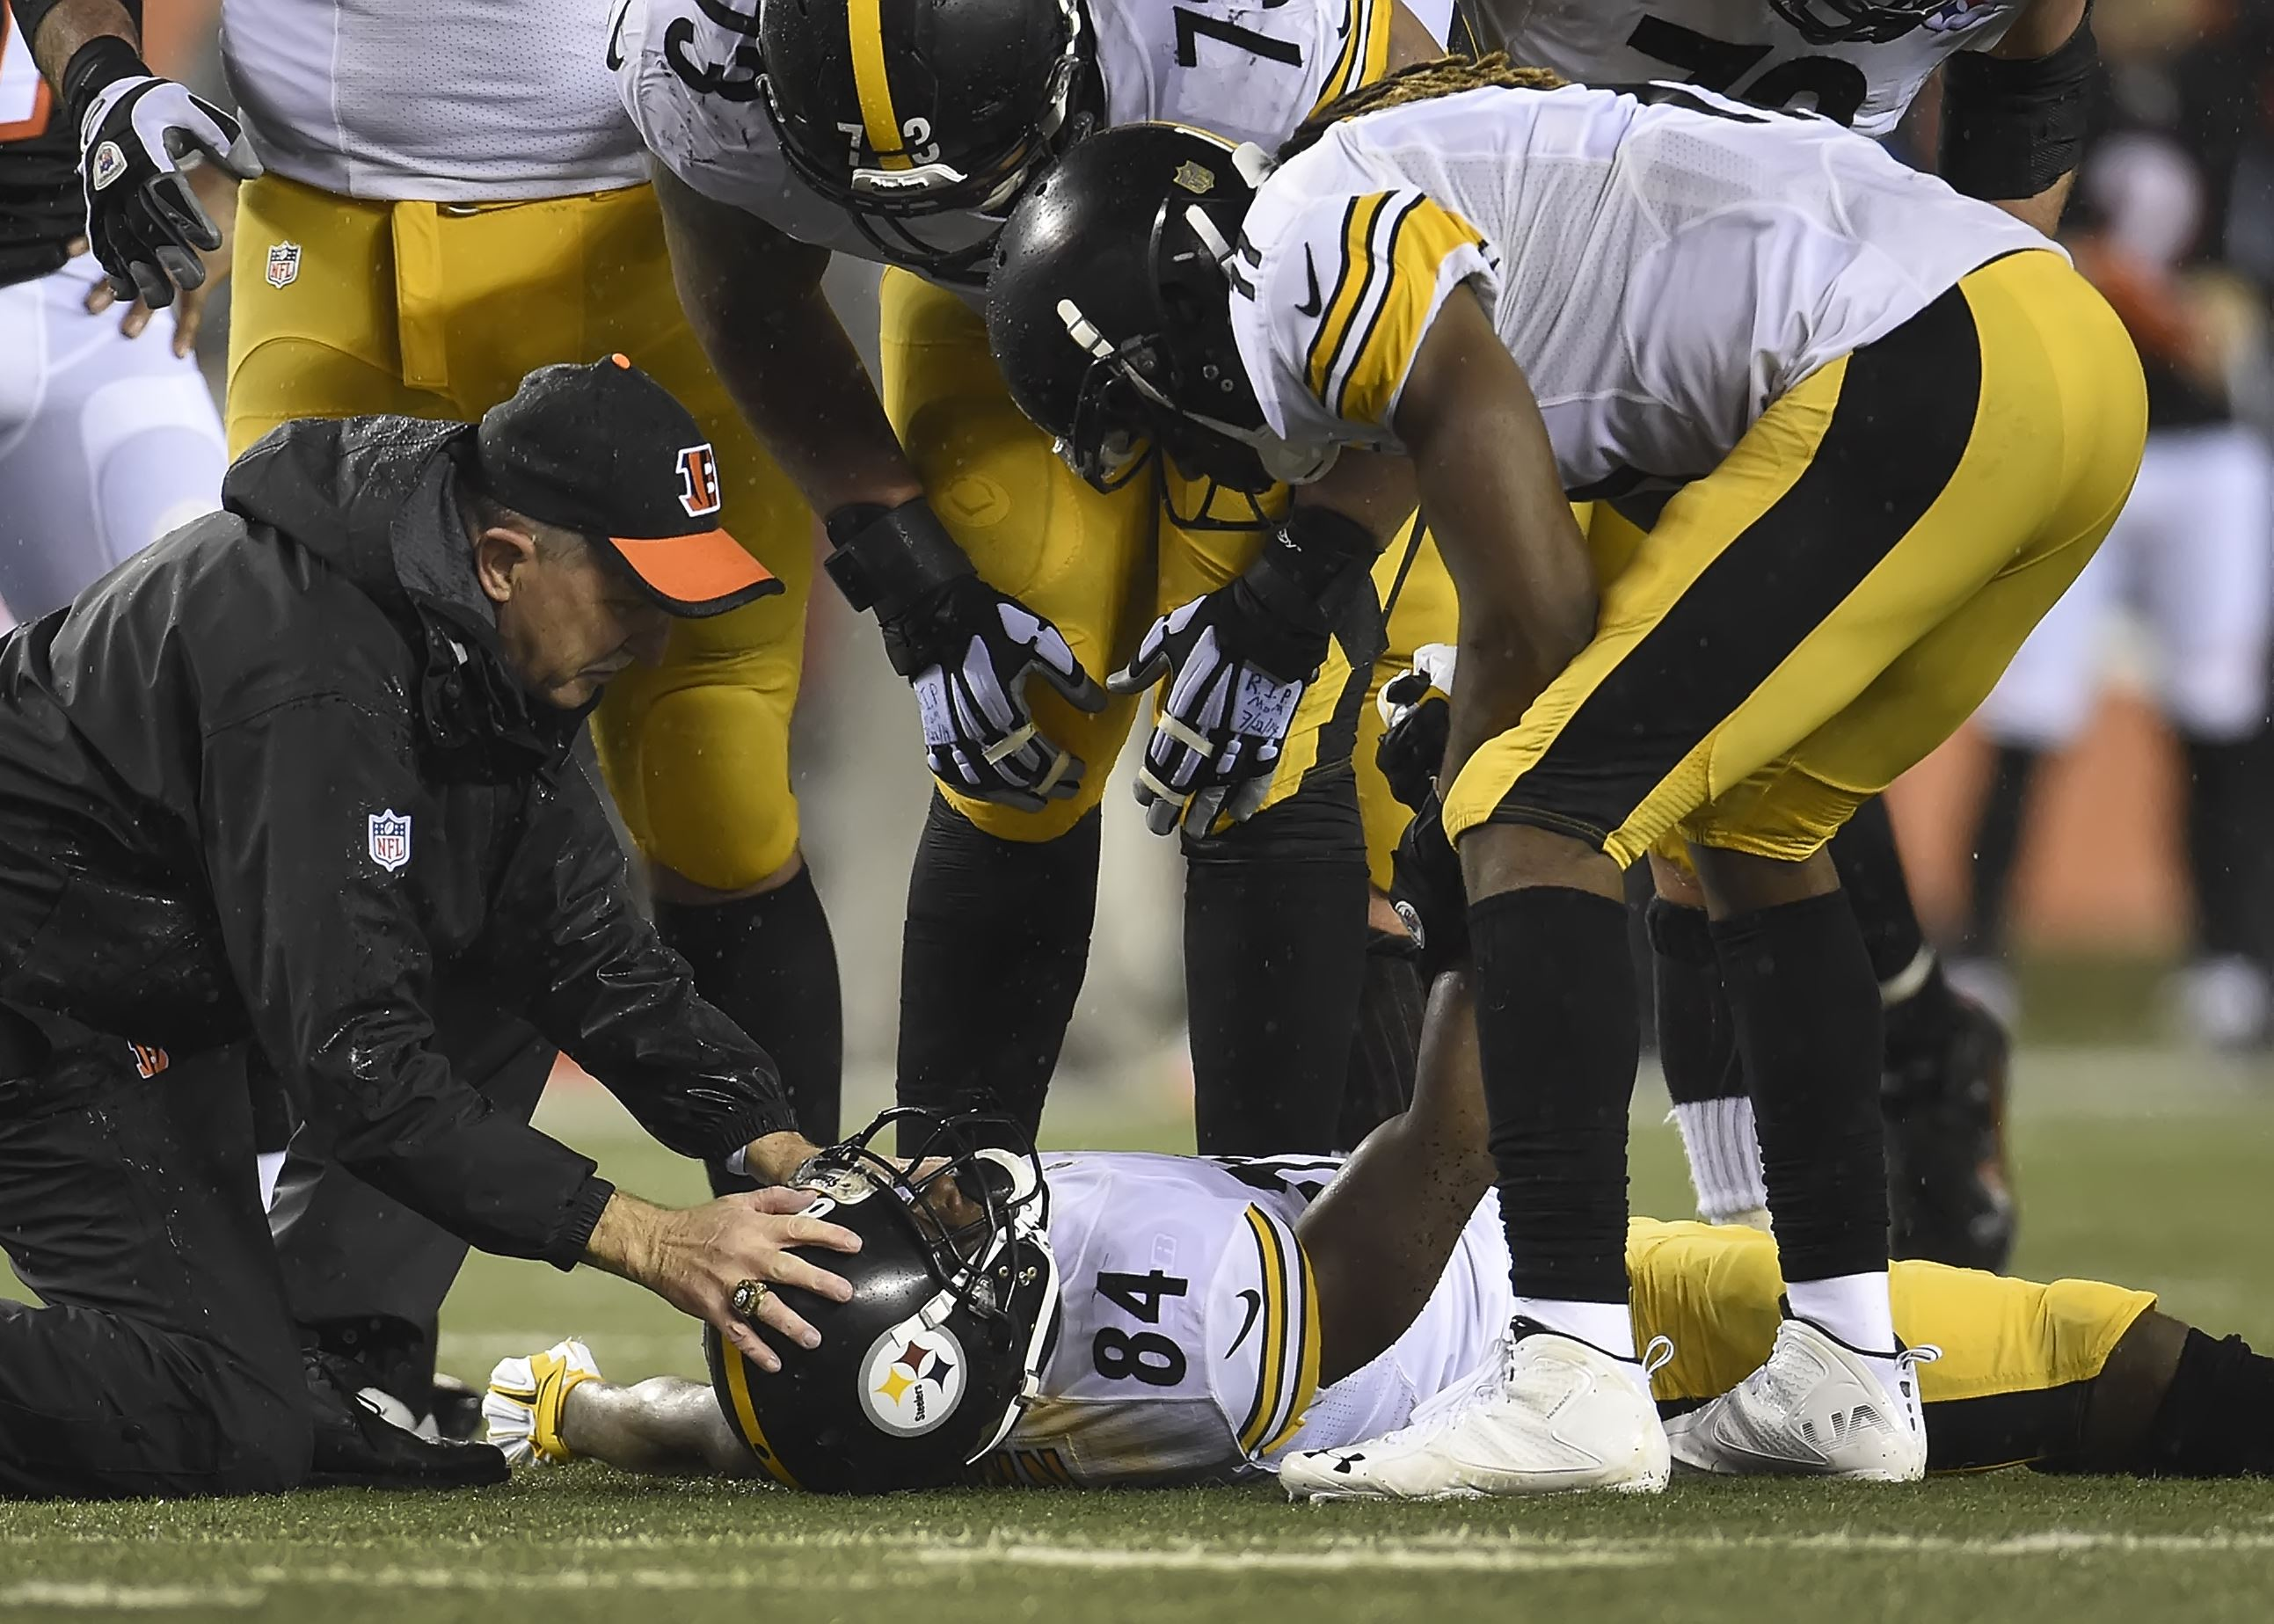 Steelers' Antonio Brown says Vontaze Burfict was trying to 'kill me, steal my dreams'